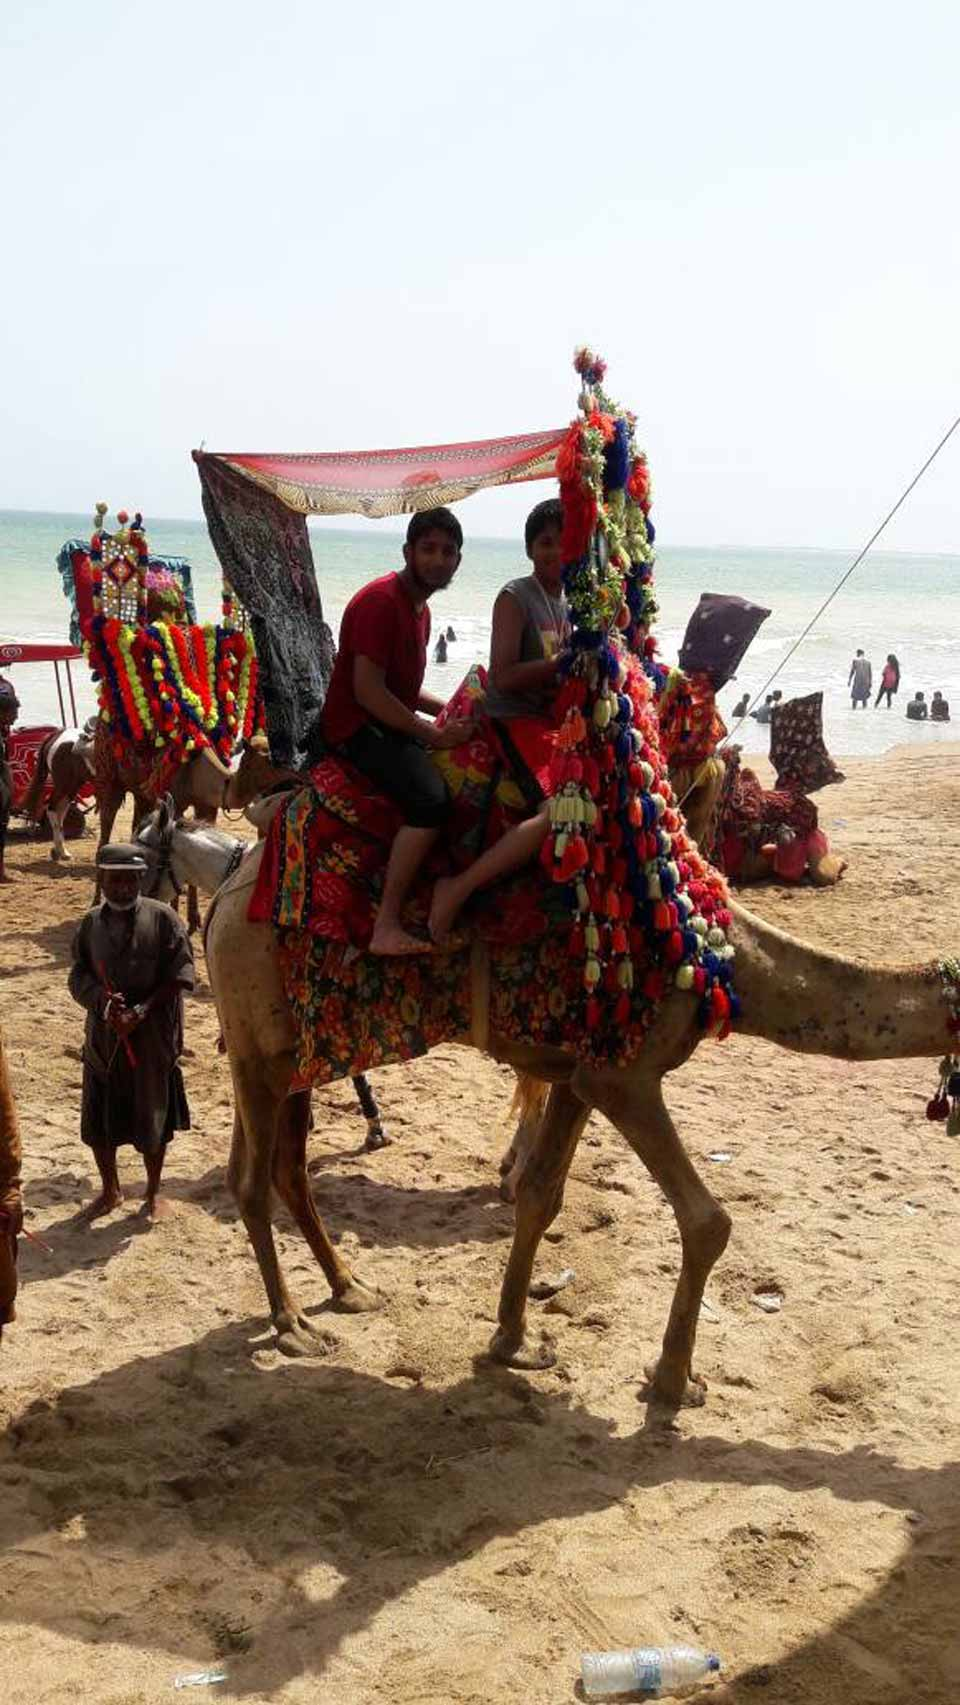 Zubair Bari and Habib Ur Rehman are enjoying the camel ride